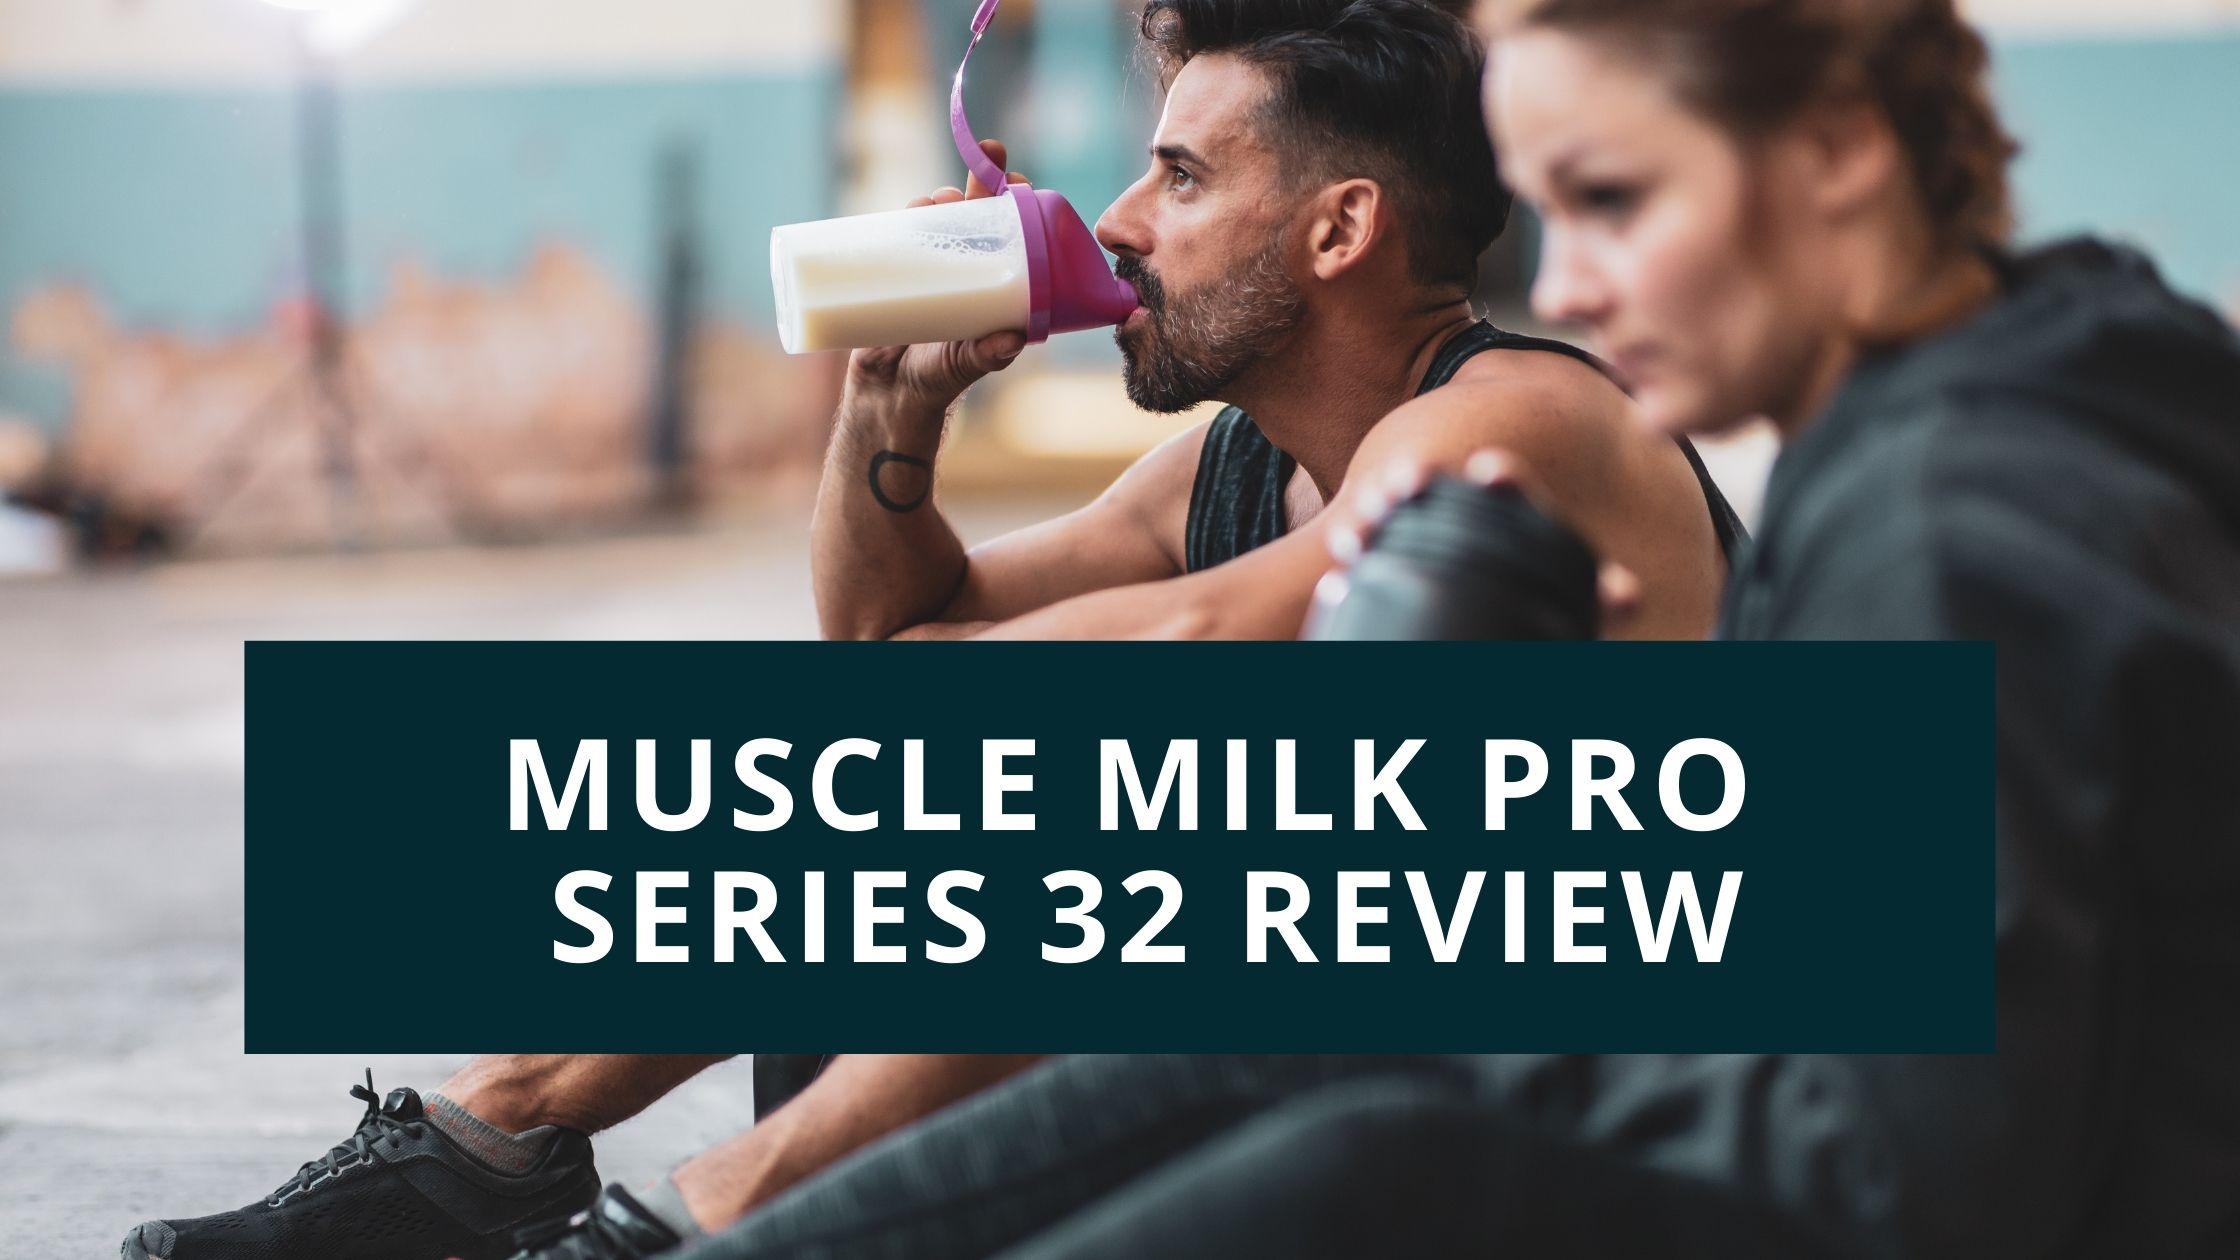 Muscle Milk Pro Series 32 Review